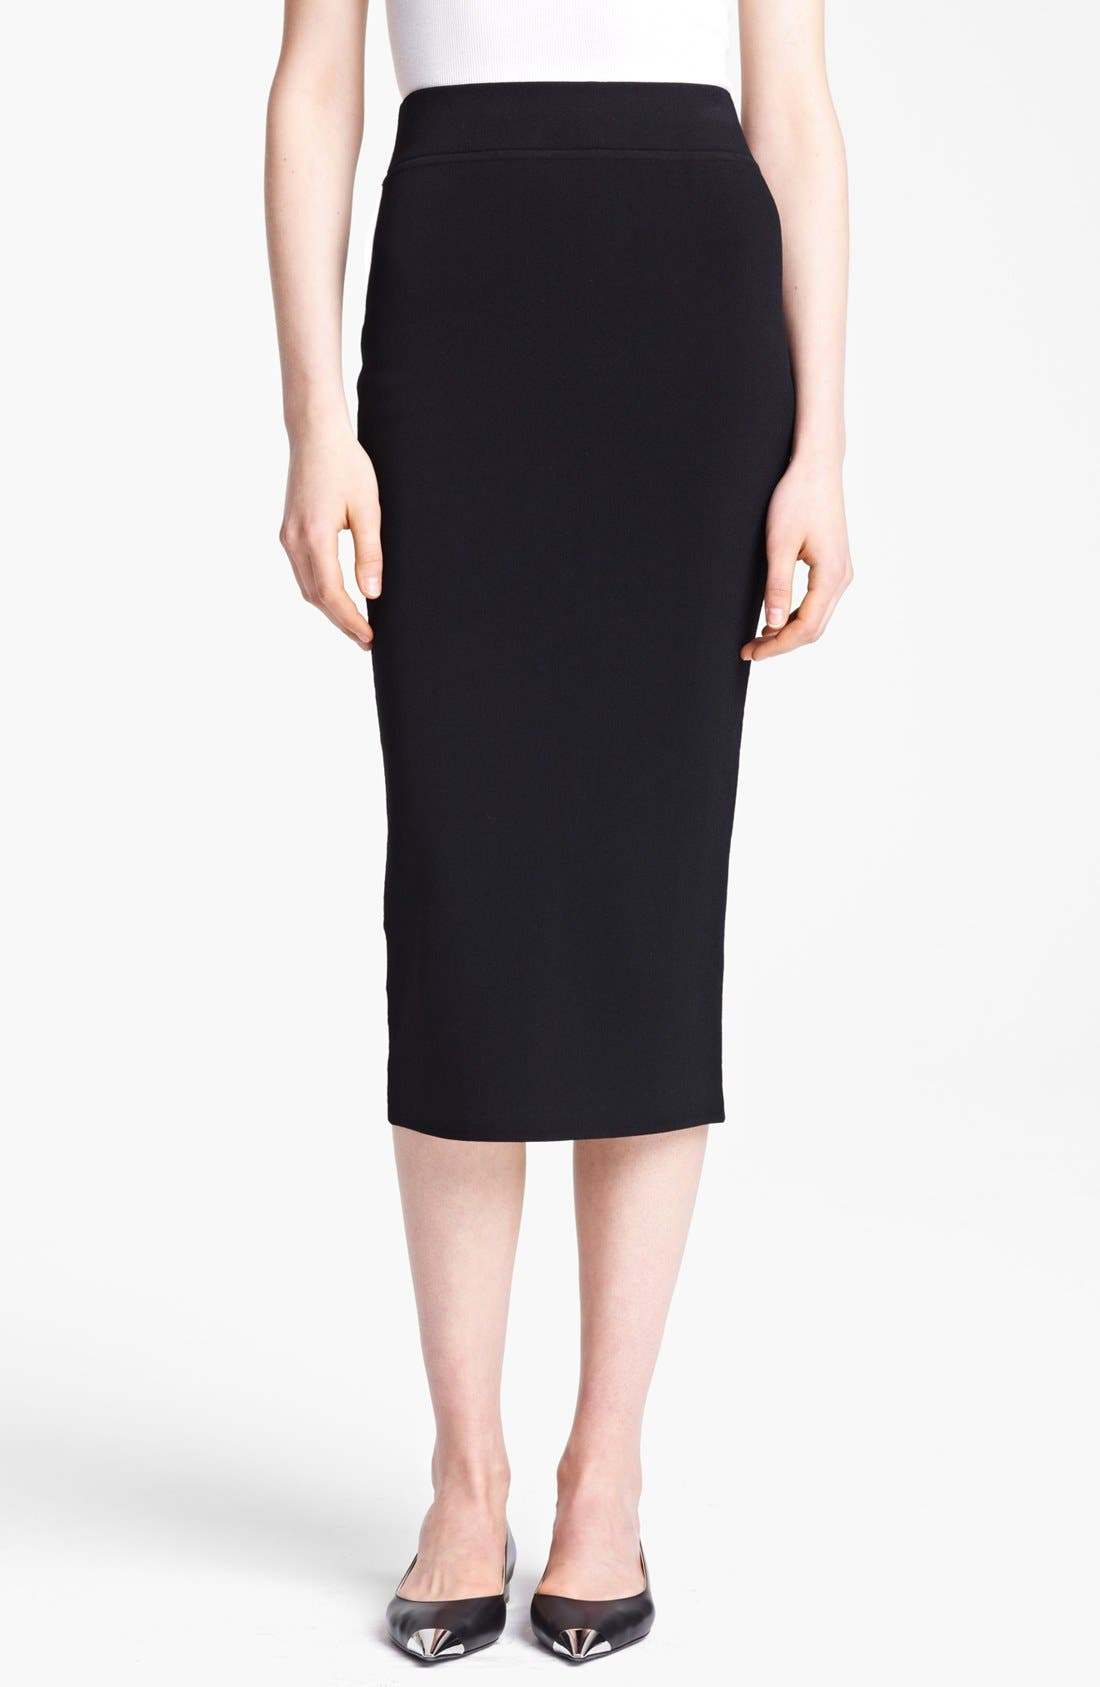 Alternate Image 1 Selected - Michael Kors Tube Skirt